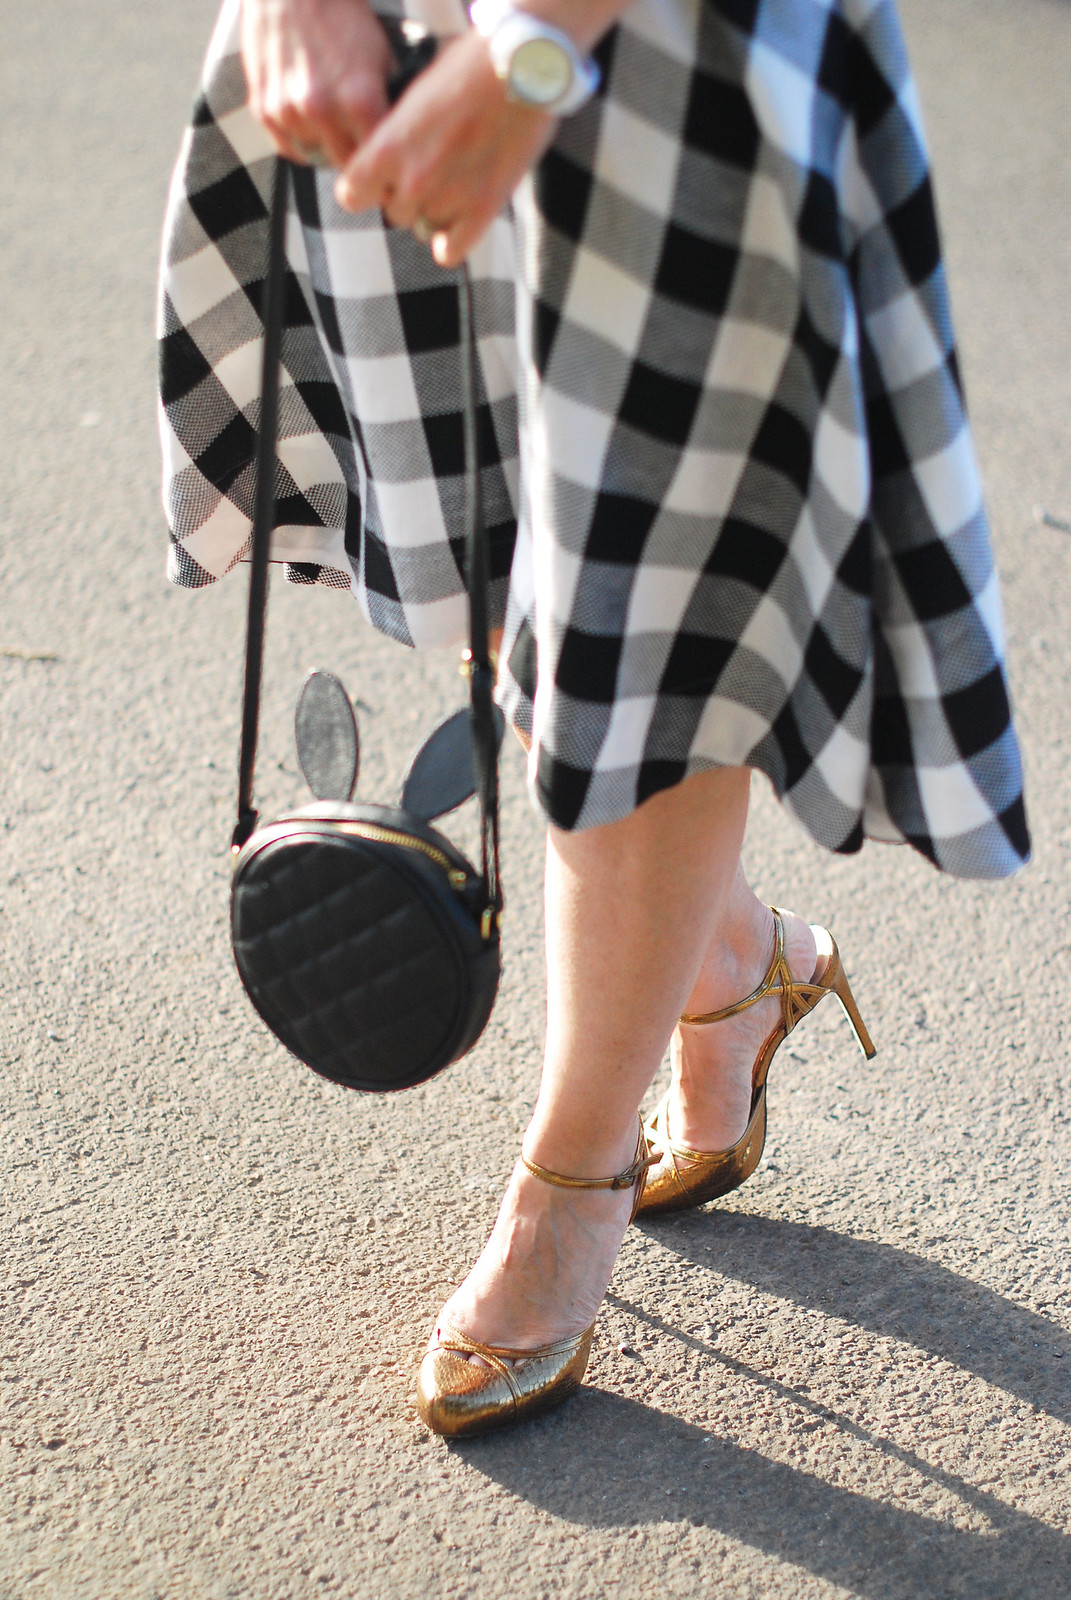 Classic summer dressing: Bardot-style gingham dress, bronze heels, bunny ears bag | Not Dressed As Lamb